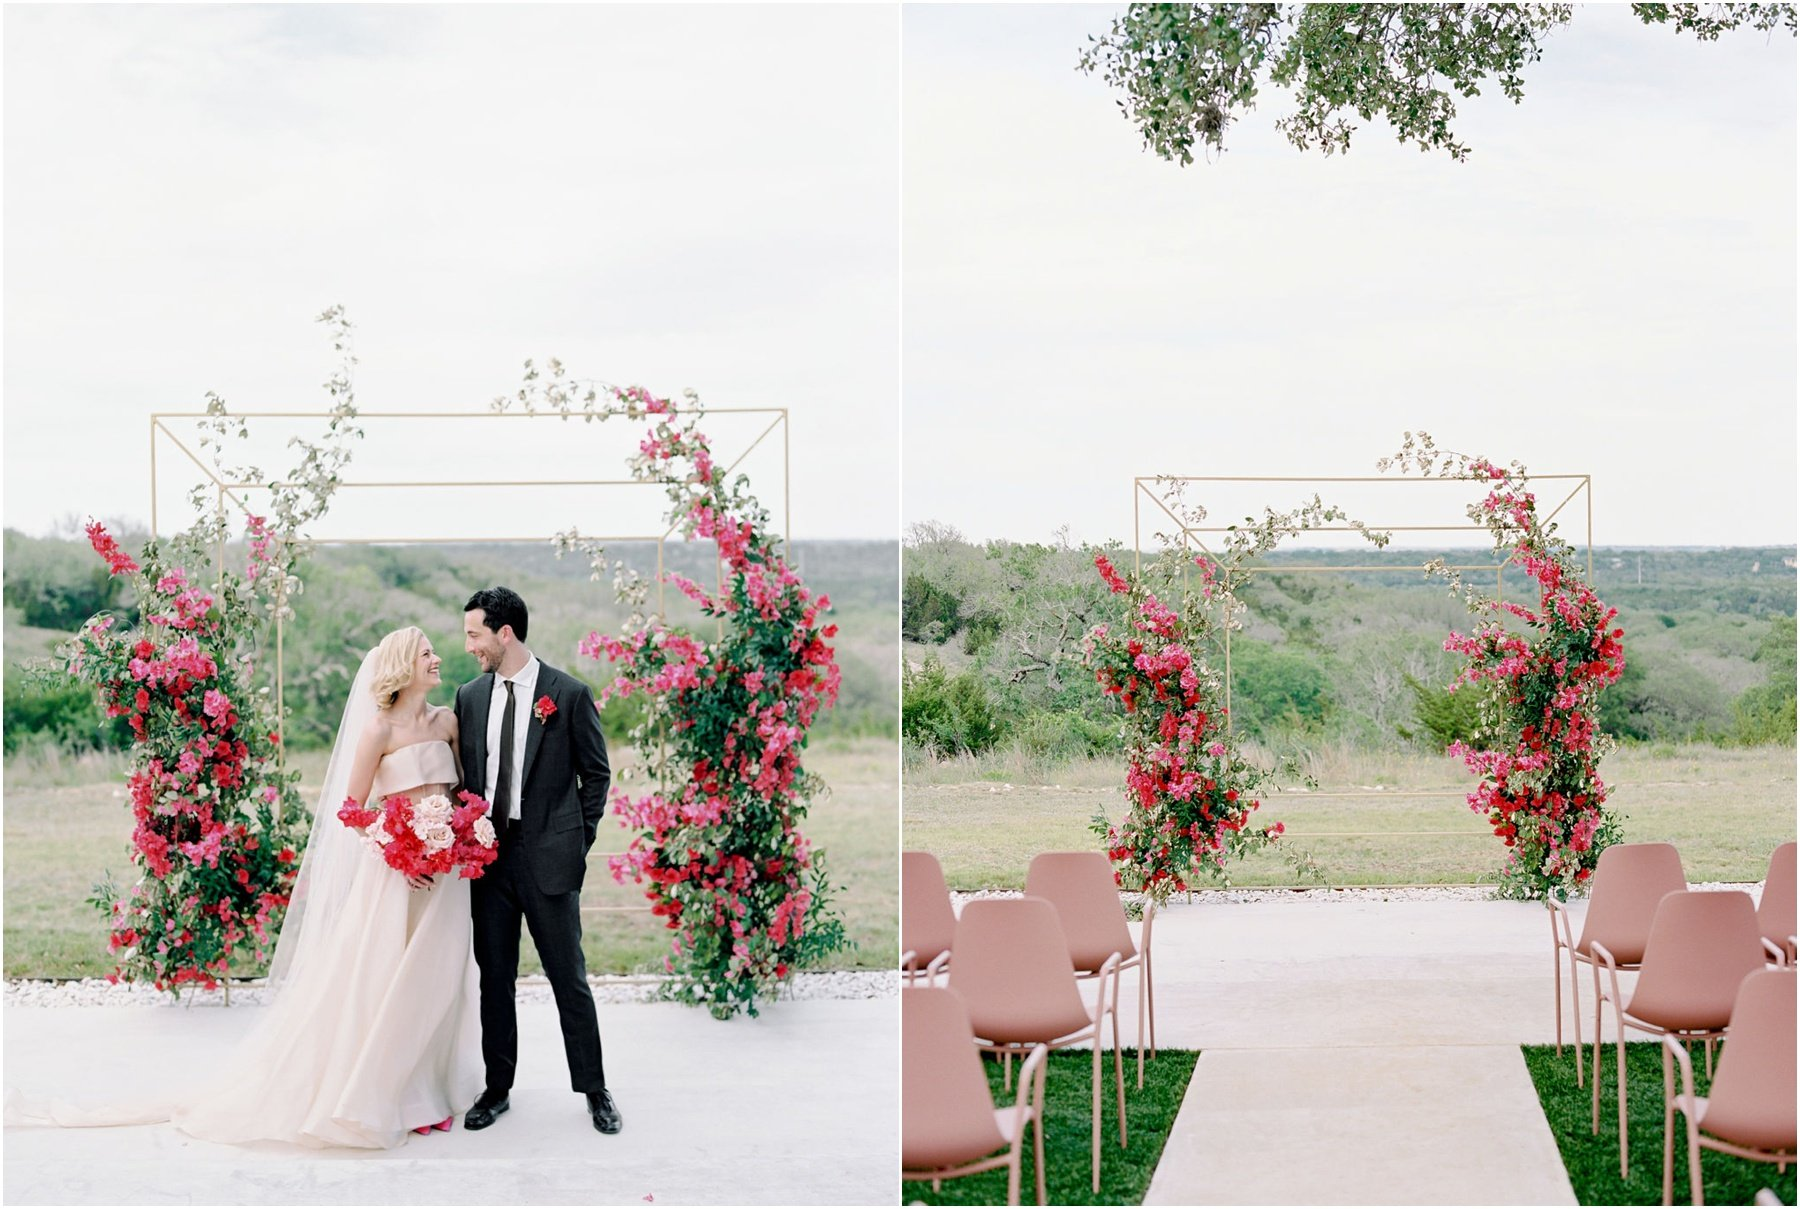 Ceremony floral arch with fuchsia bougainvillea florals, bride holding hot pink bougainvillea bouquet